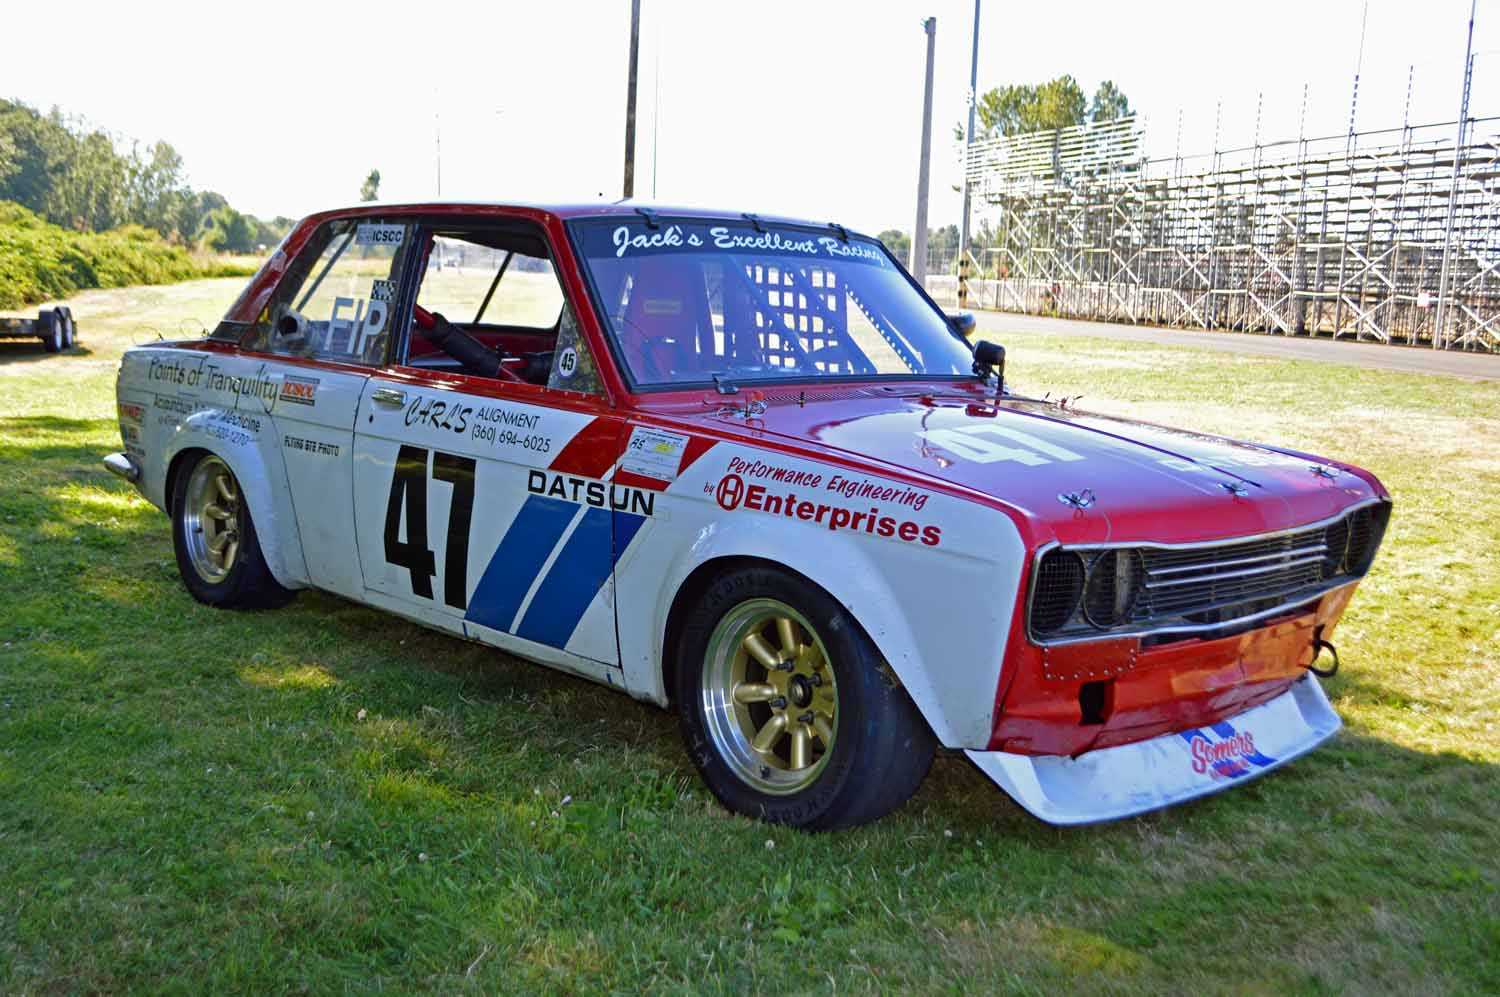 1969 Datsun 510 Two Door Race Car For Sale by Owner in Portland, OR